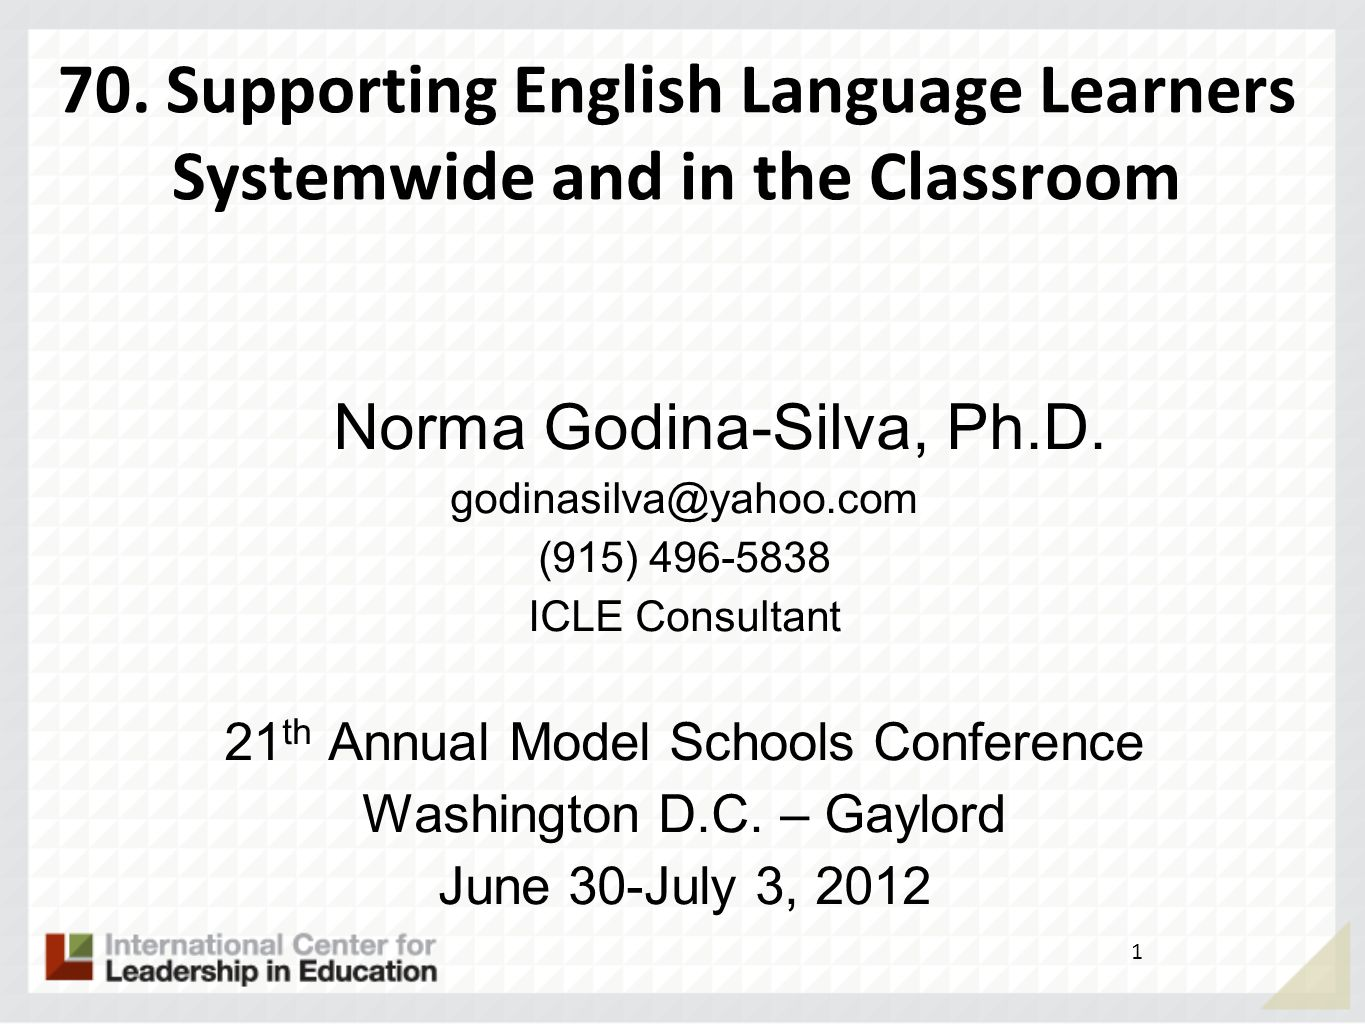 70. Supporting English Language Learners Systemwide and in the Classroom